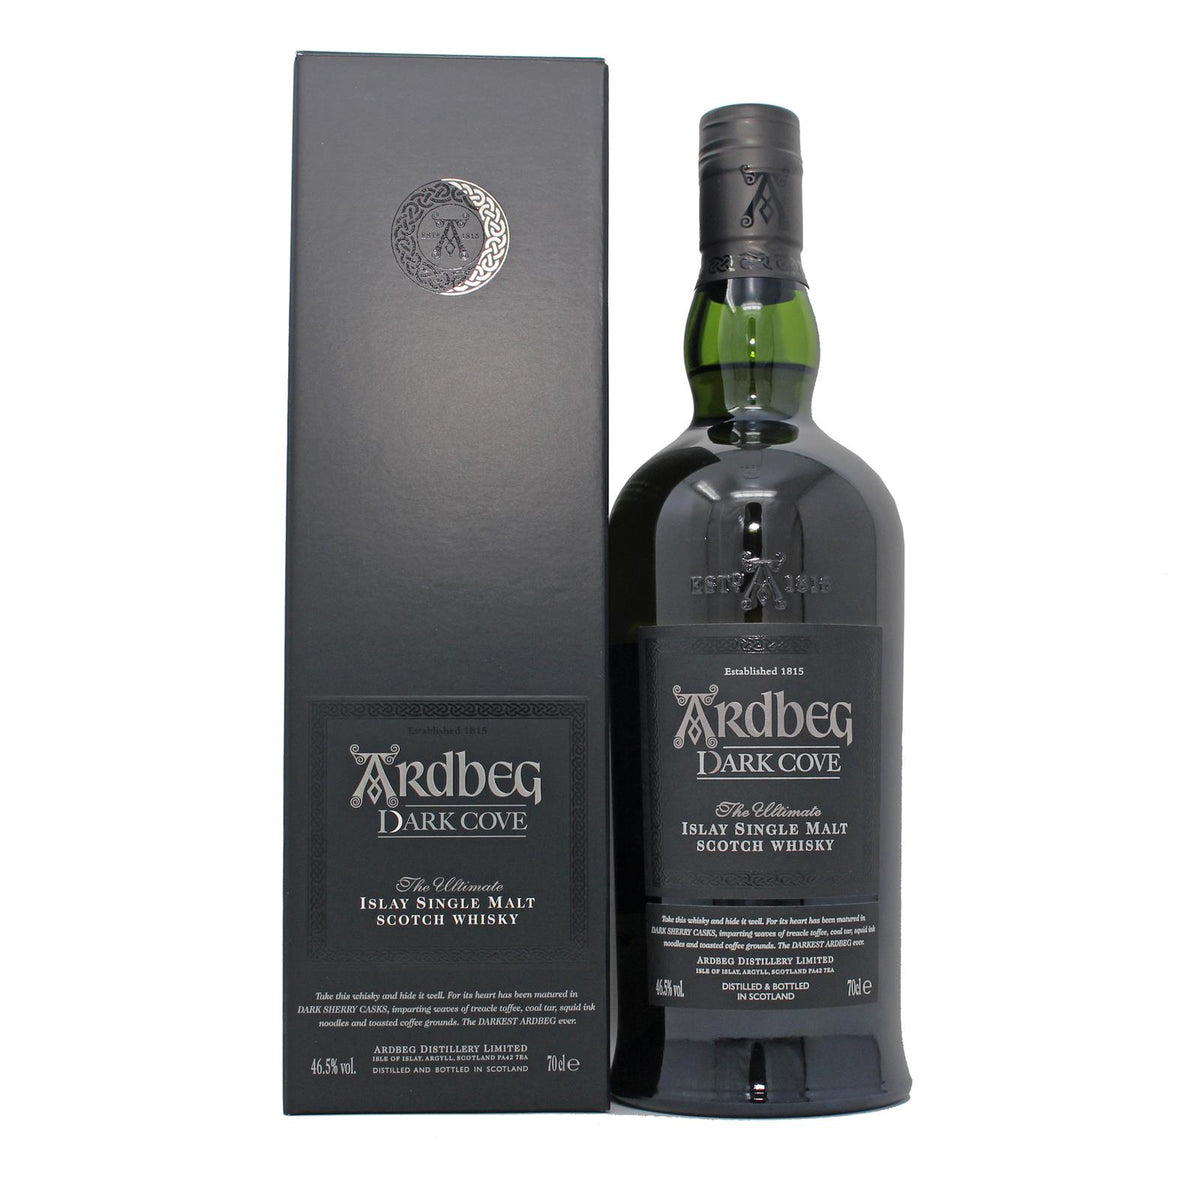 Ardbeg Dark Cove 2016 Islay Single Malt Scotch Whisky 0,7L